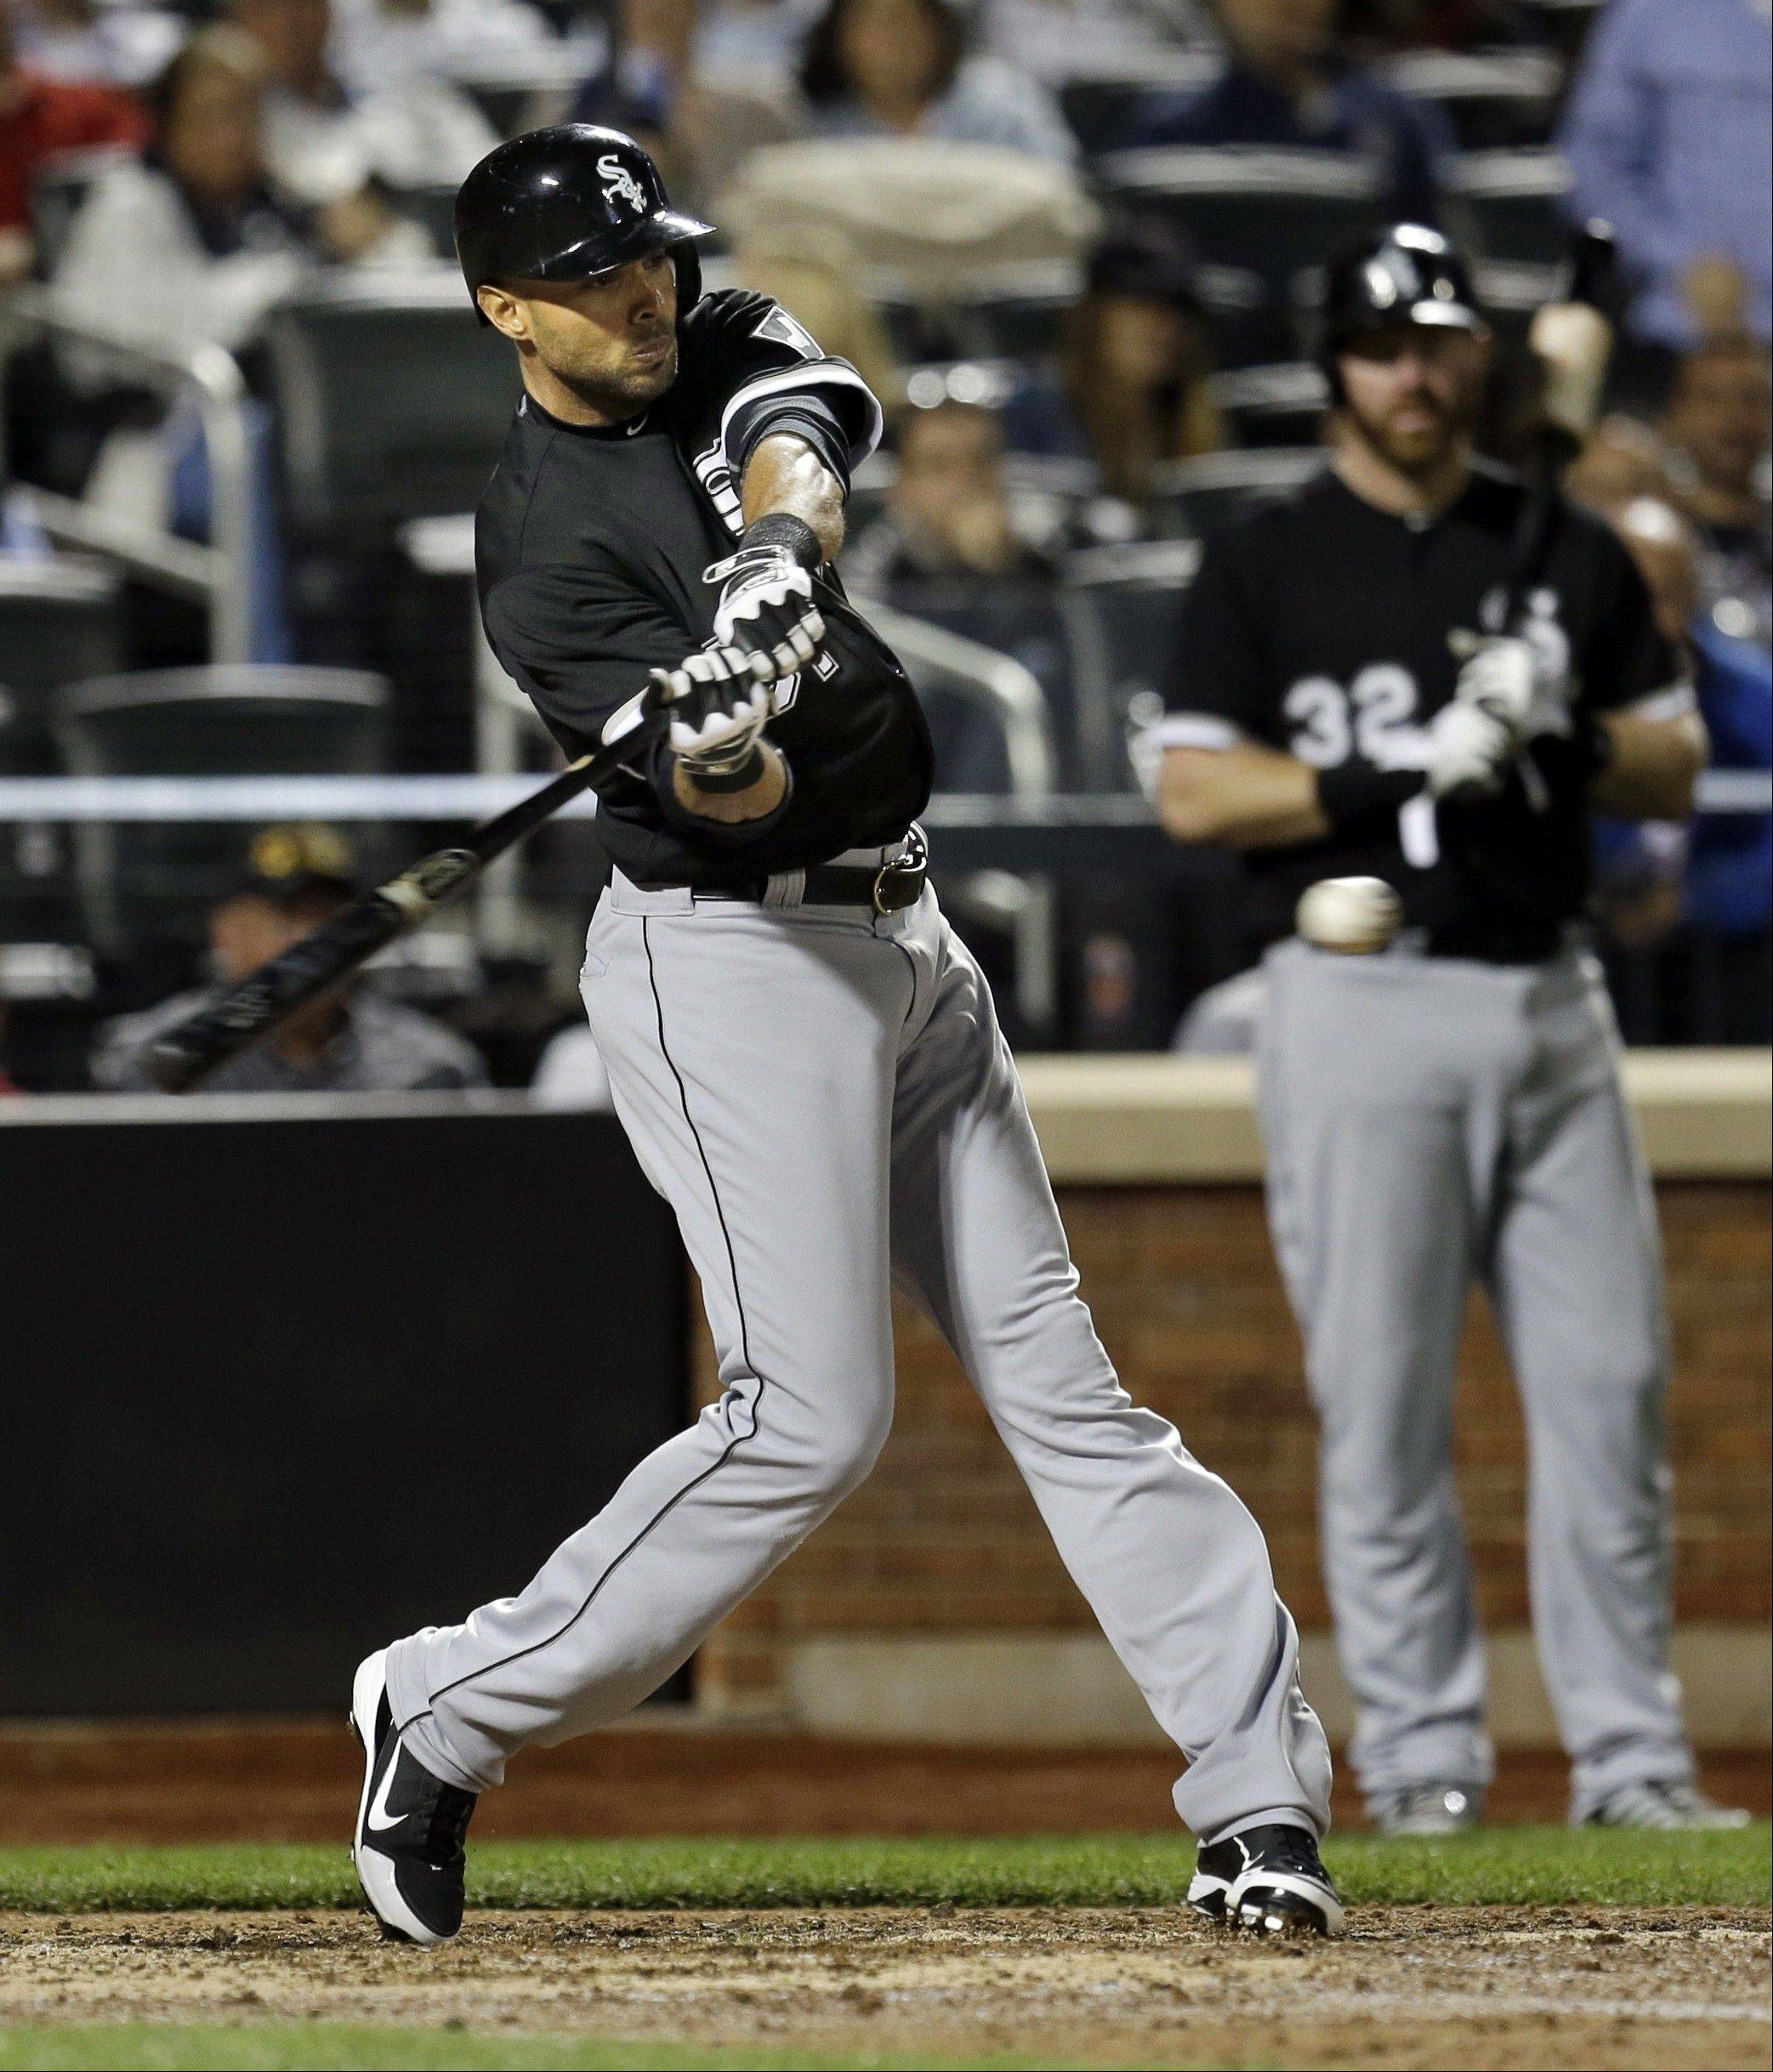 Chicago White Sox's Alex Rios bats during the seventh inning of the baseball game against the New York Mets at Citi Field on Tuesday, May 7, 2013 in New York. Rios reached on an infield single.